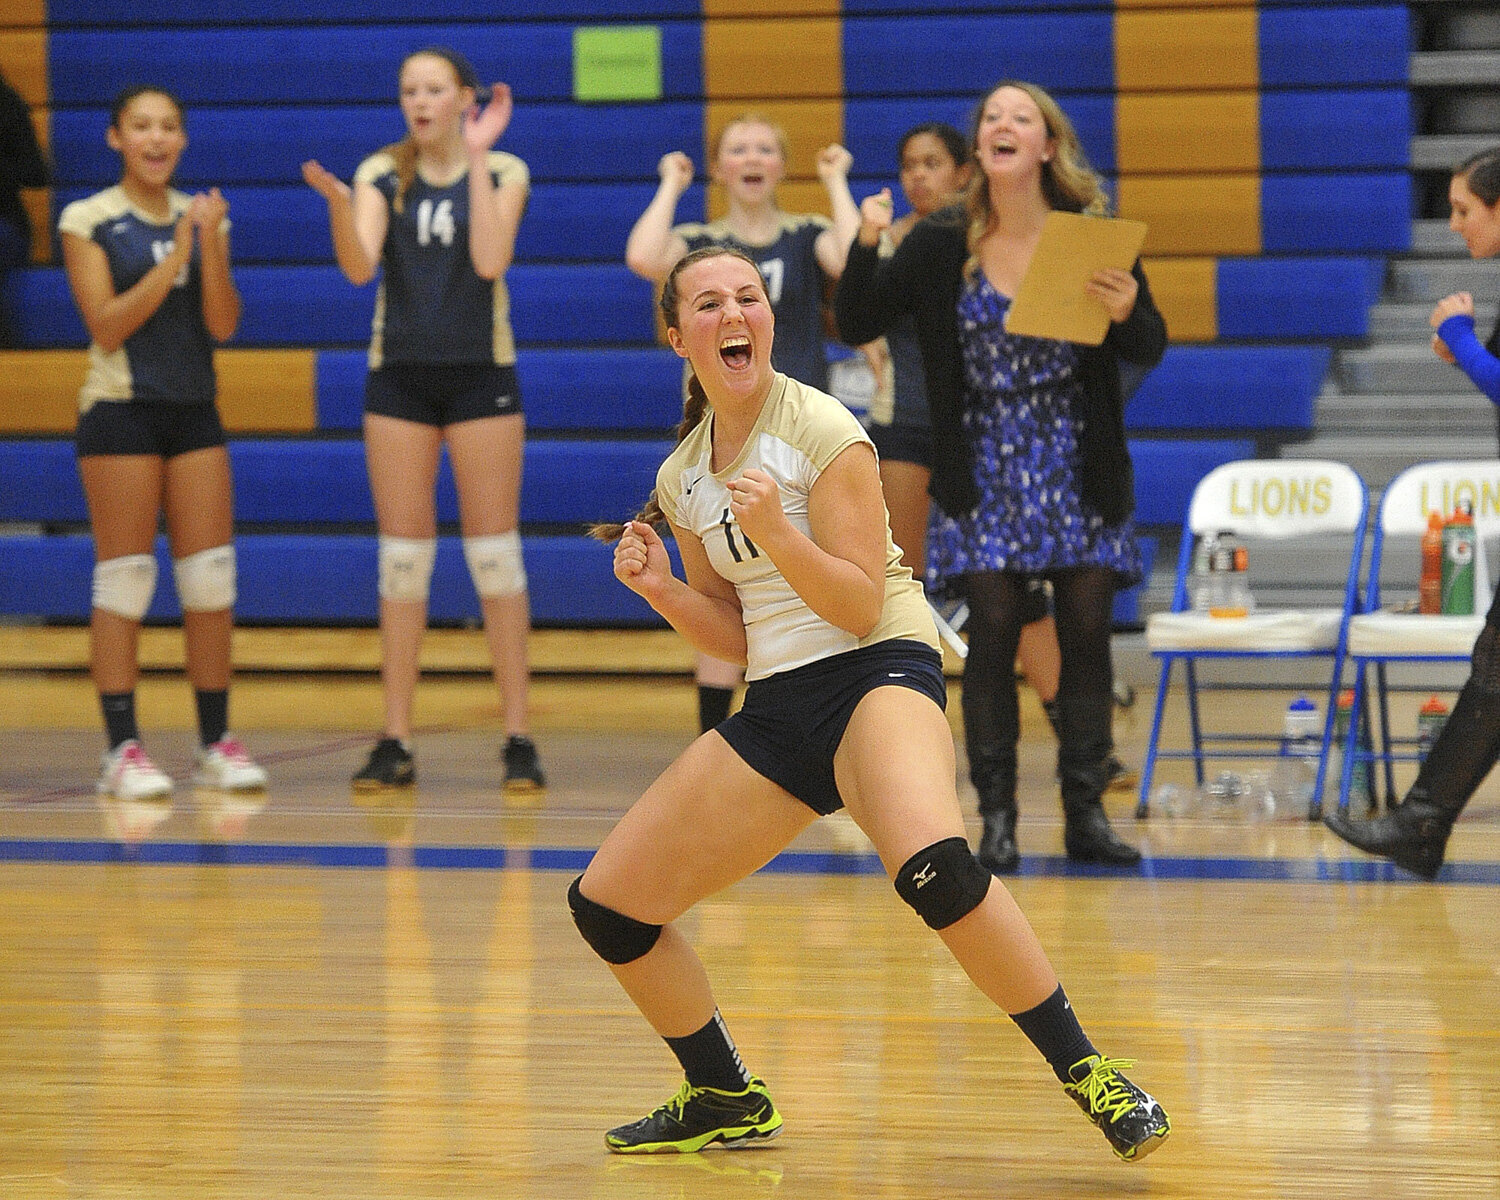 Sweethome's Victoria Rigler celebrates a point as Williamsville East faces rival Sweethome in Section VI Class A Girls Volleyball Championships at Lockport High School.